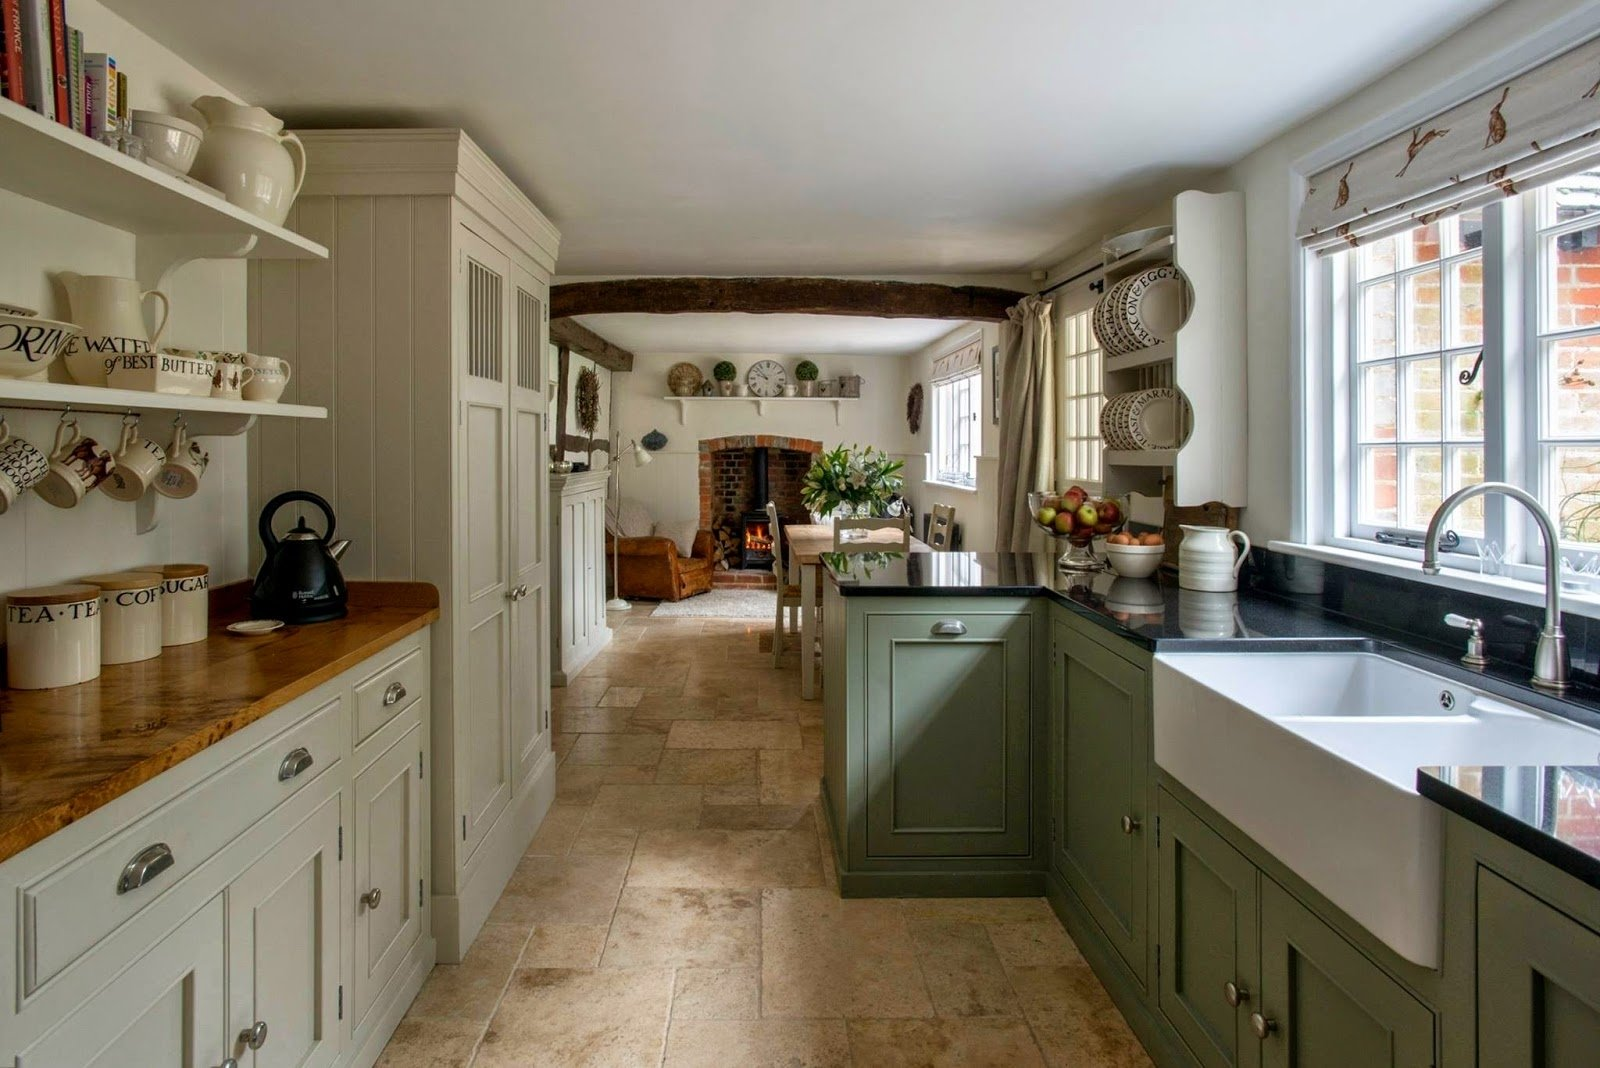 10 Most Popular Country Kitchen Decorating Ideas On A Budget rustic country kitchen decor rustic kitchen decorating ideas old 2020